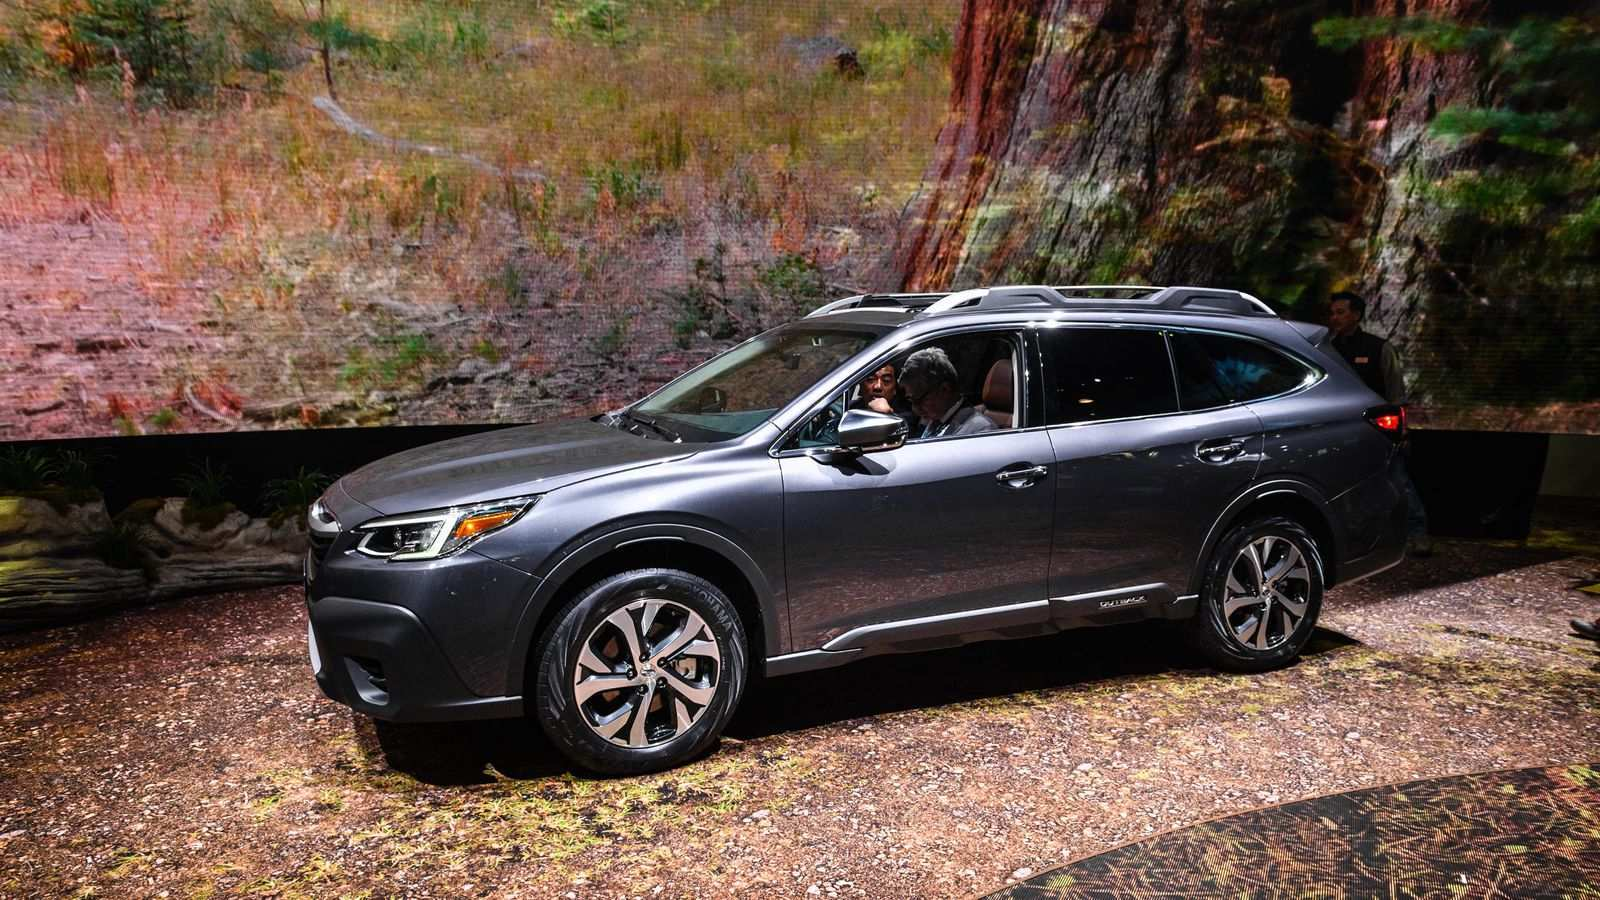 49 New All New Subaru Outback 2020 Performance And New Engine